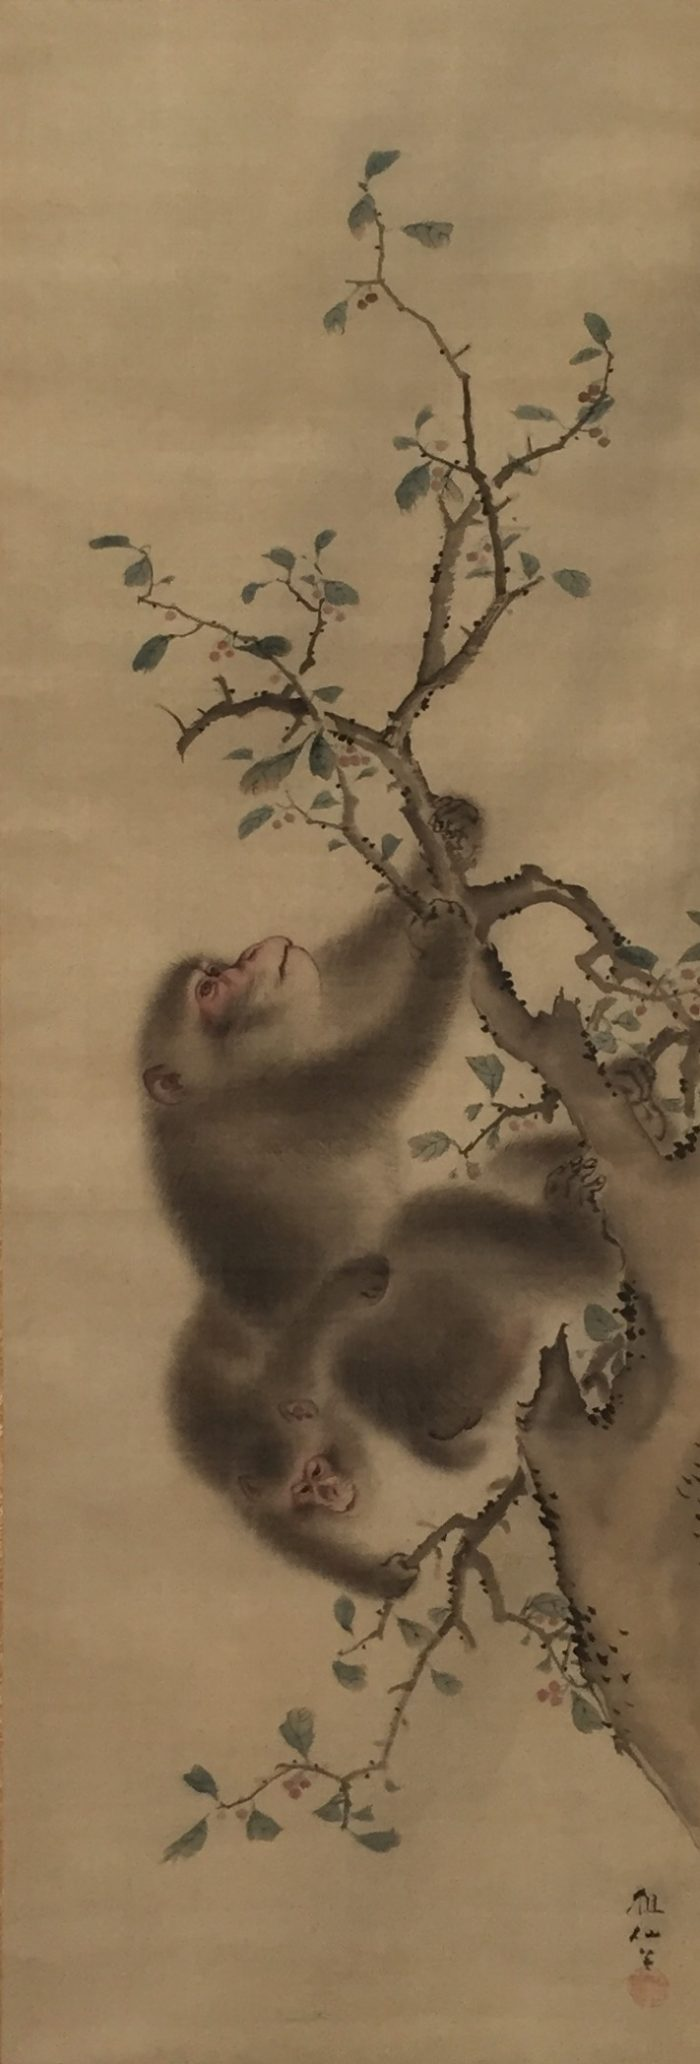 Two Monkeys Hanging From Branches. Mori Sosen (1747-1821).